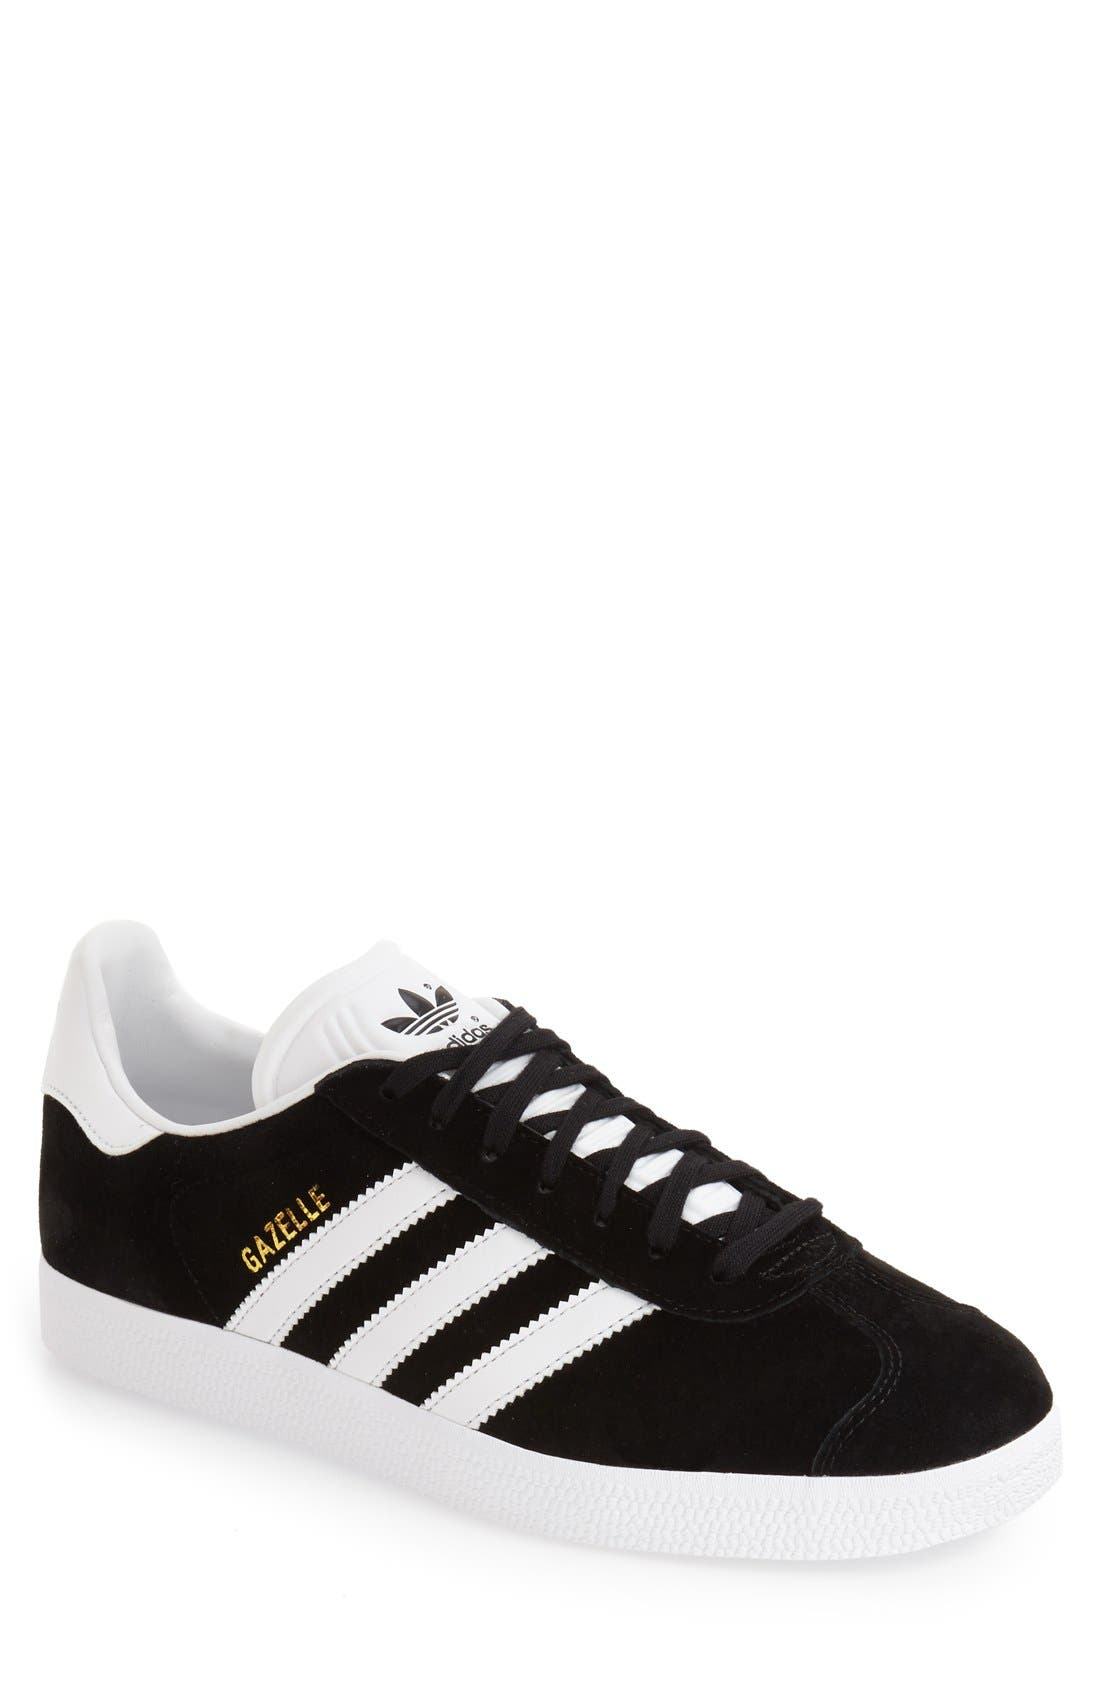 Gazelle Sneaker,                         Main,                         color, Black